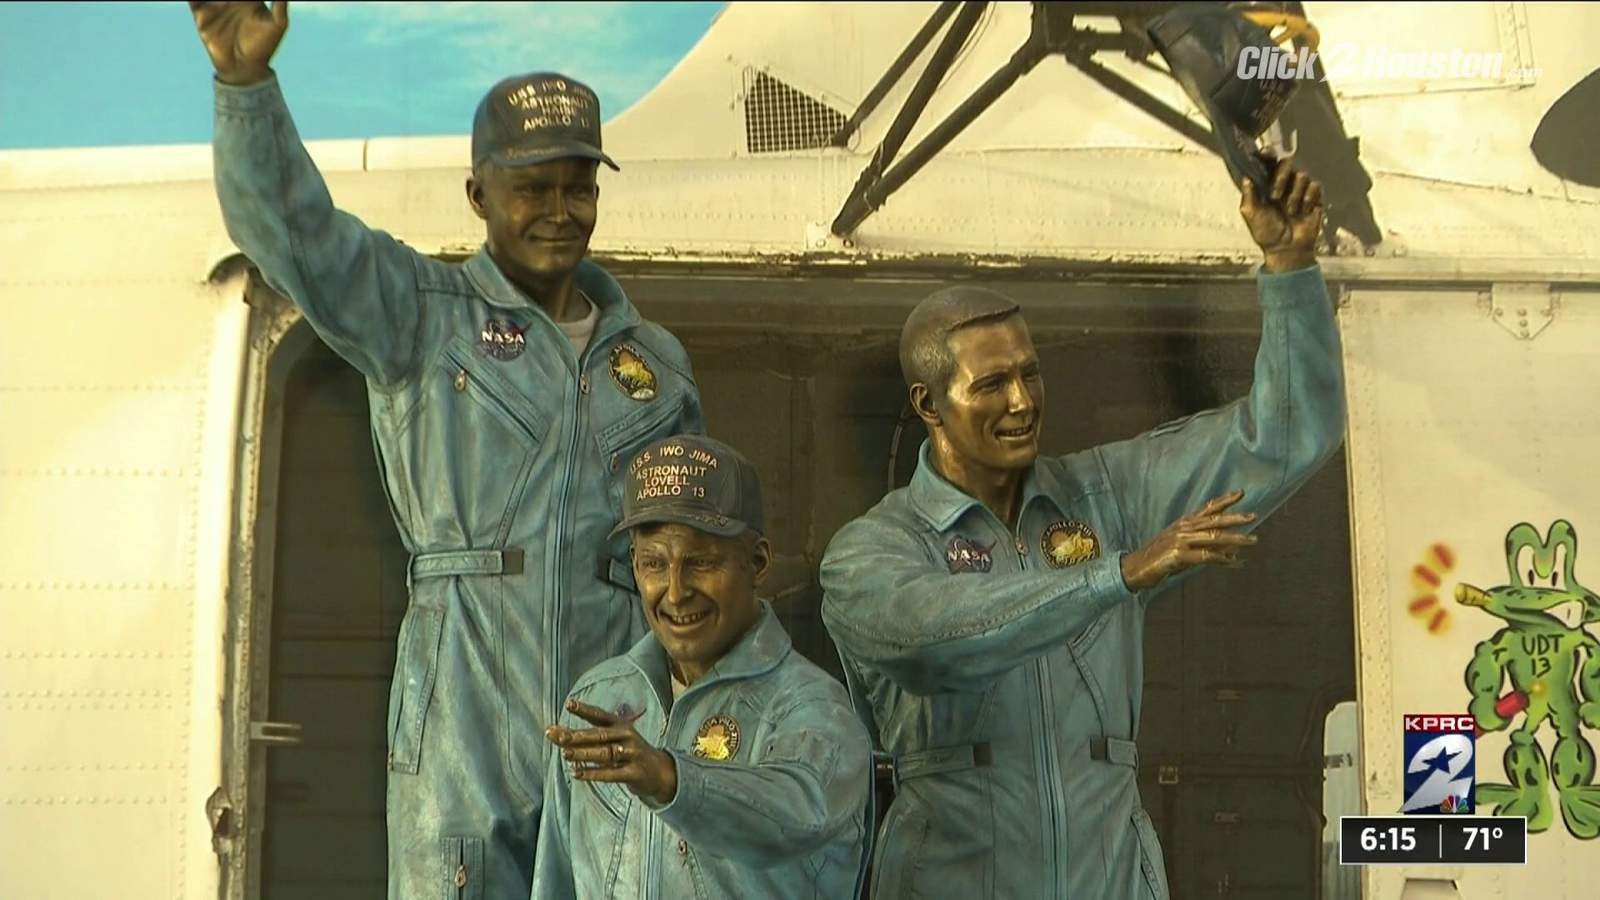 Behind the scenes: The making of Space Center Houston's Apollo 13 bronze statue